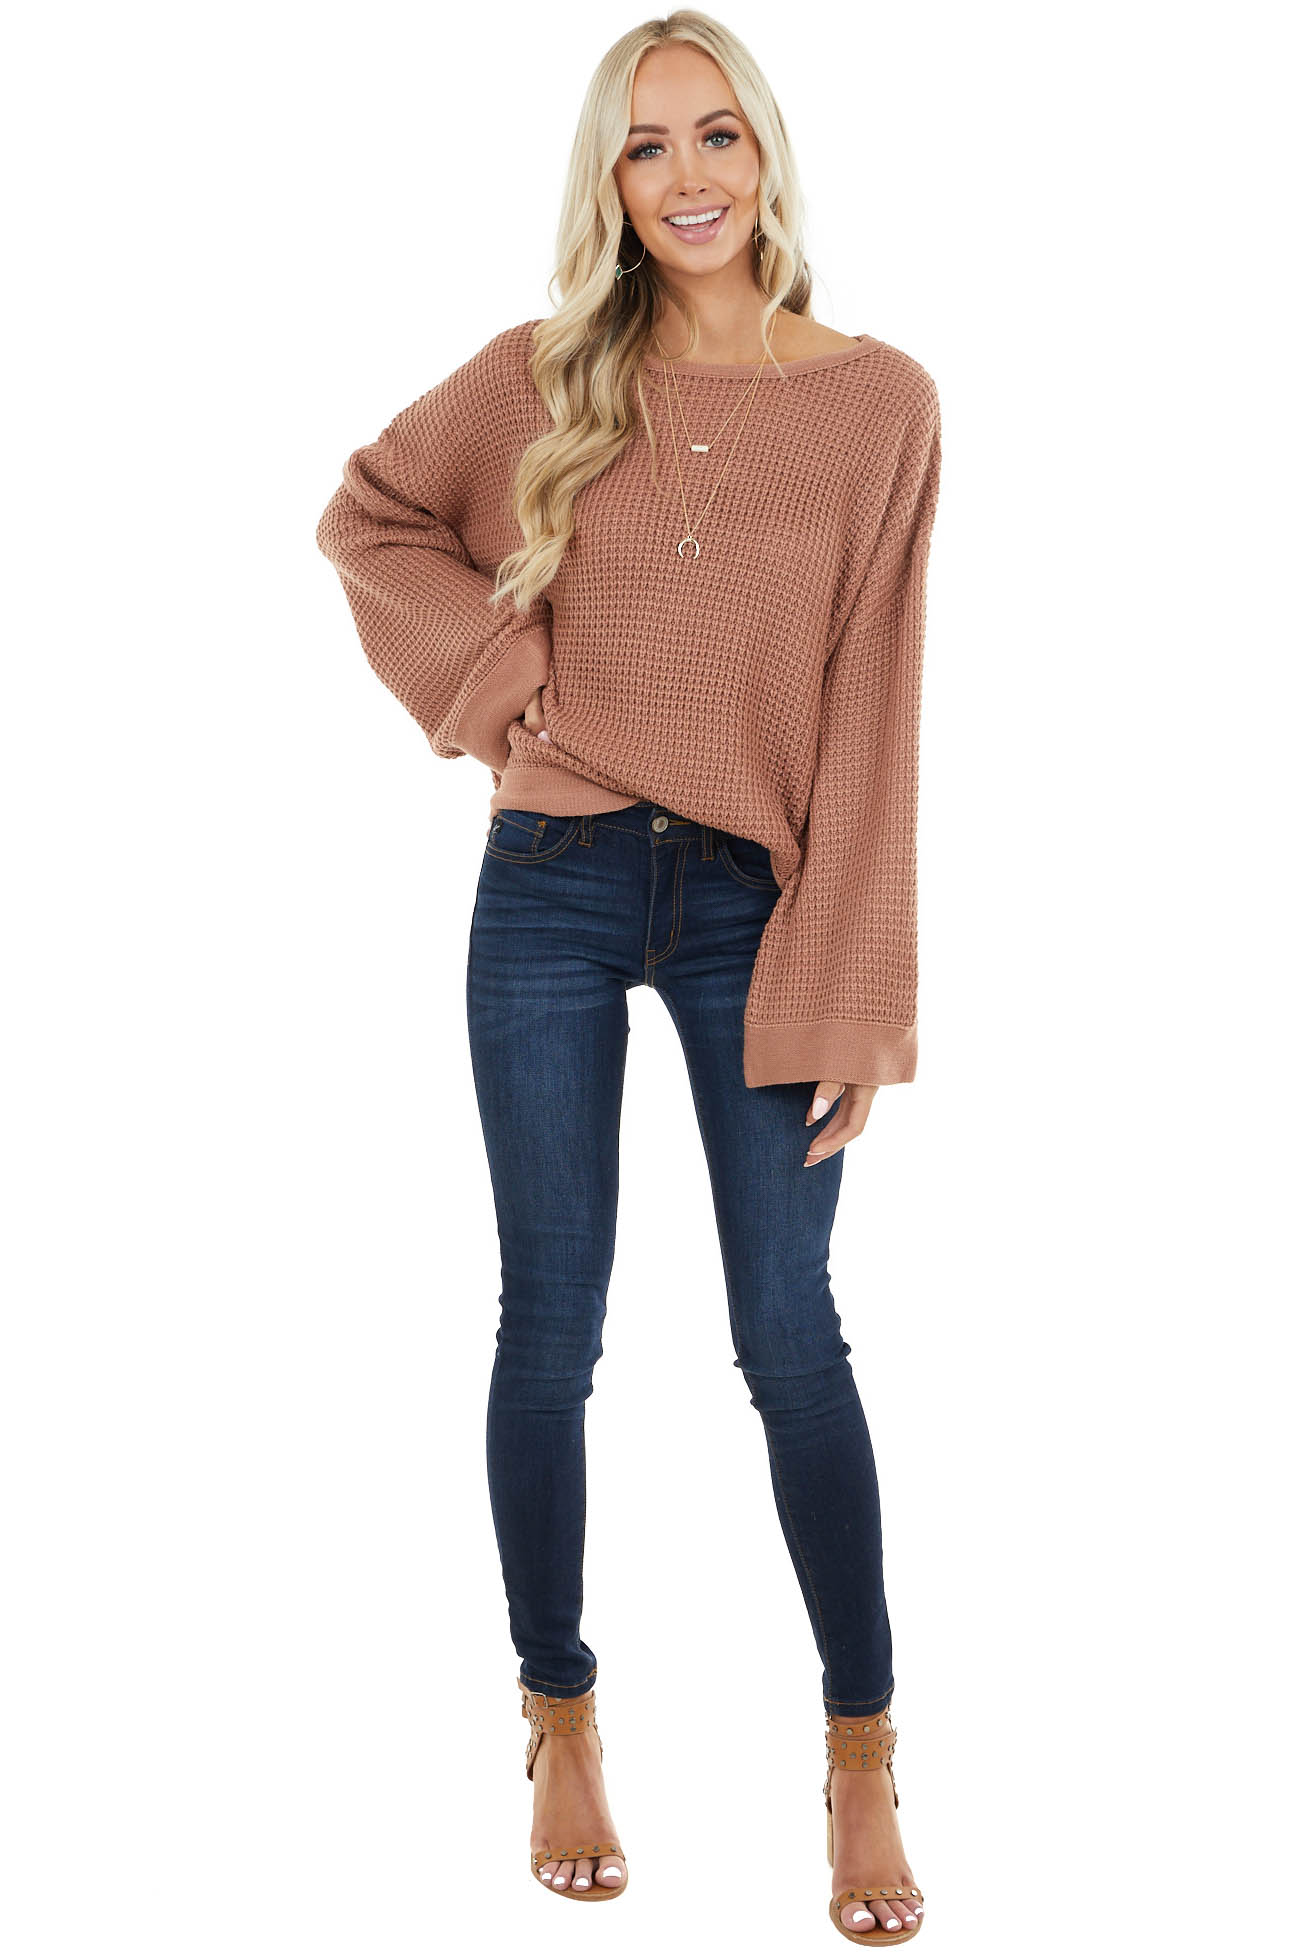 Light Sienna Stretchy Knit Sweater with Long Bell Sleeves